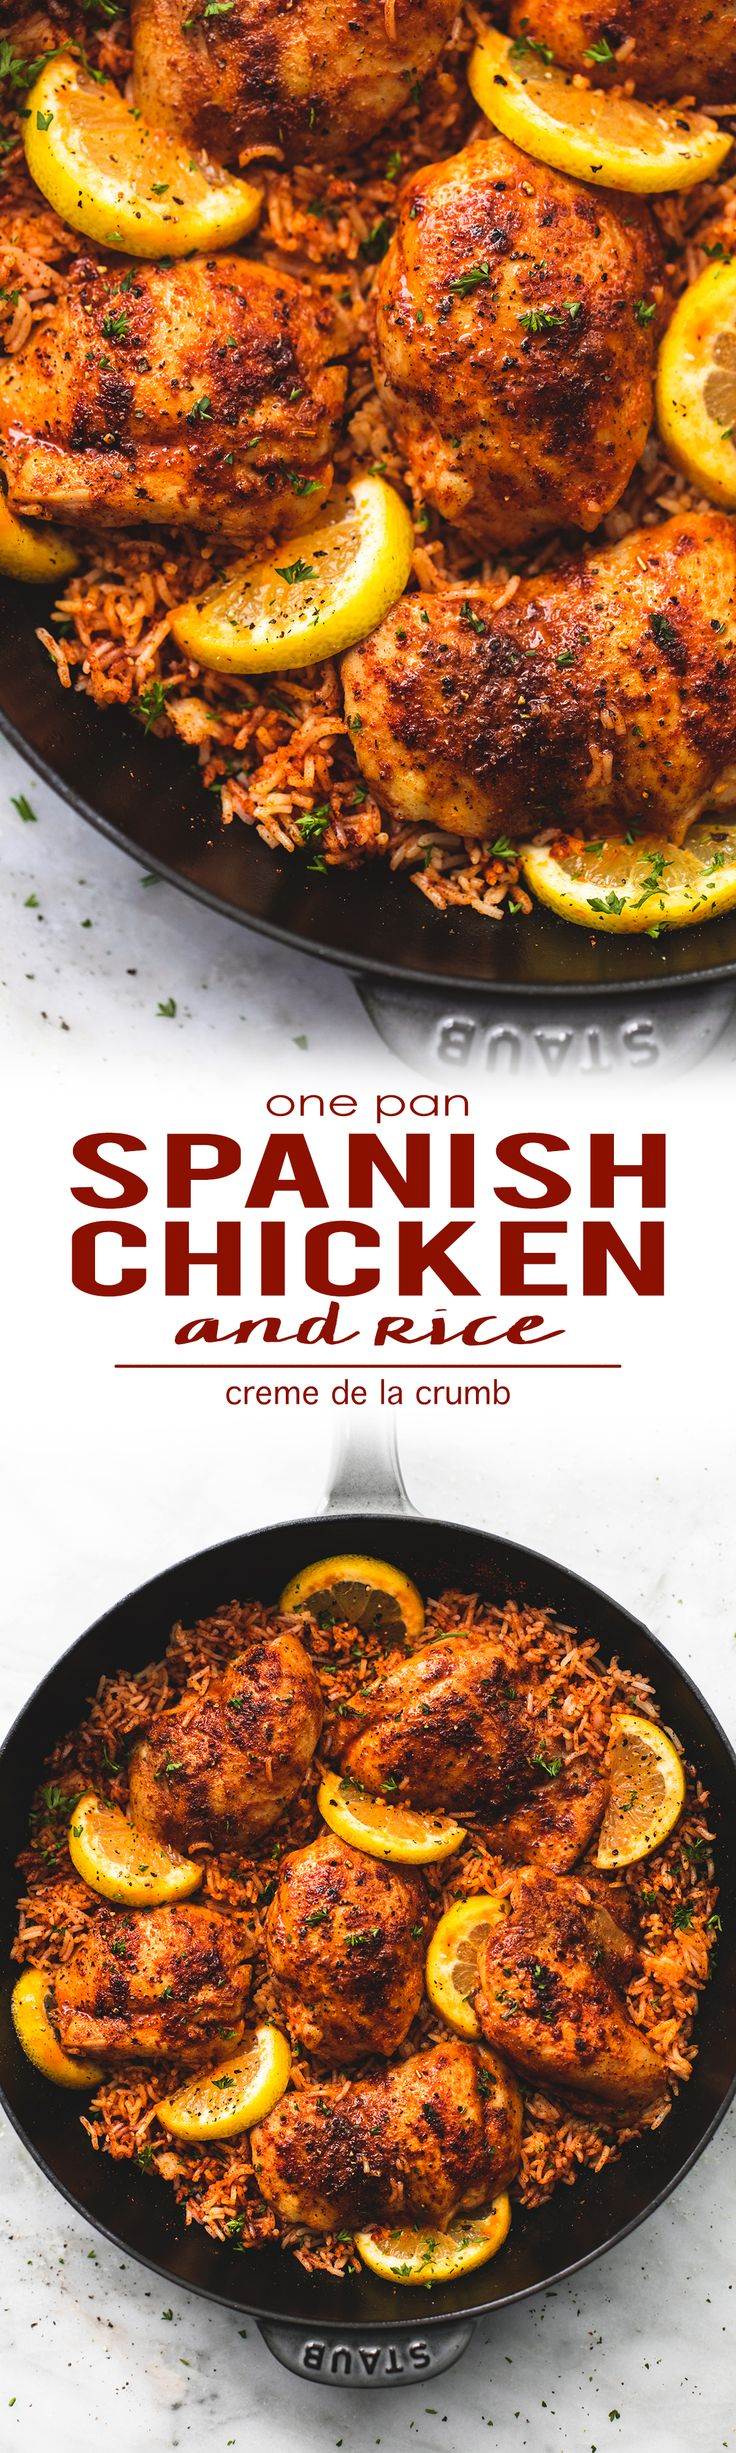 Treat yourself to some snacks! http://amzn.to/2oEqnkm Easy and healthy One Pan Spanish Chicken and Rice 30 minute meal  | lecremedelacrumb.com